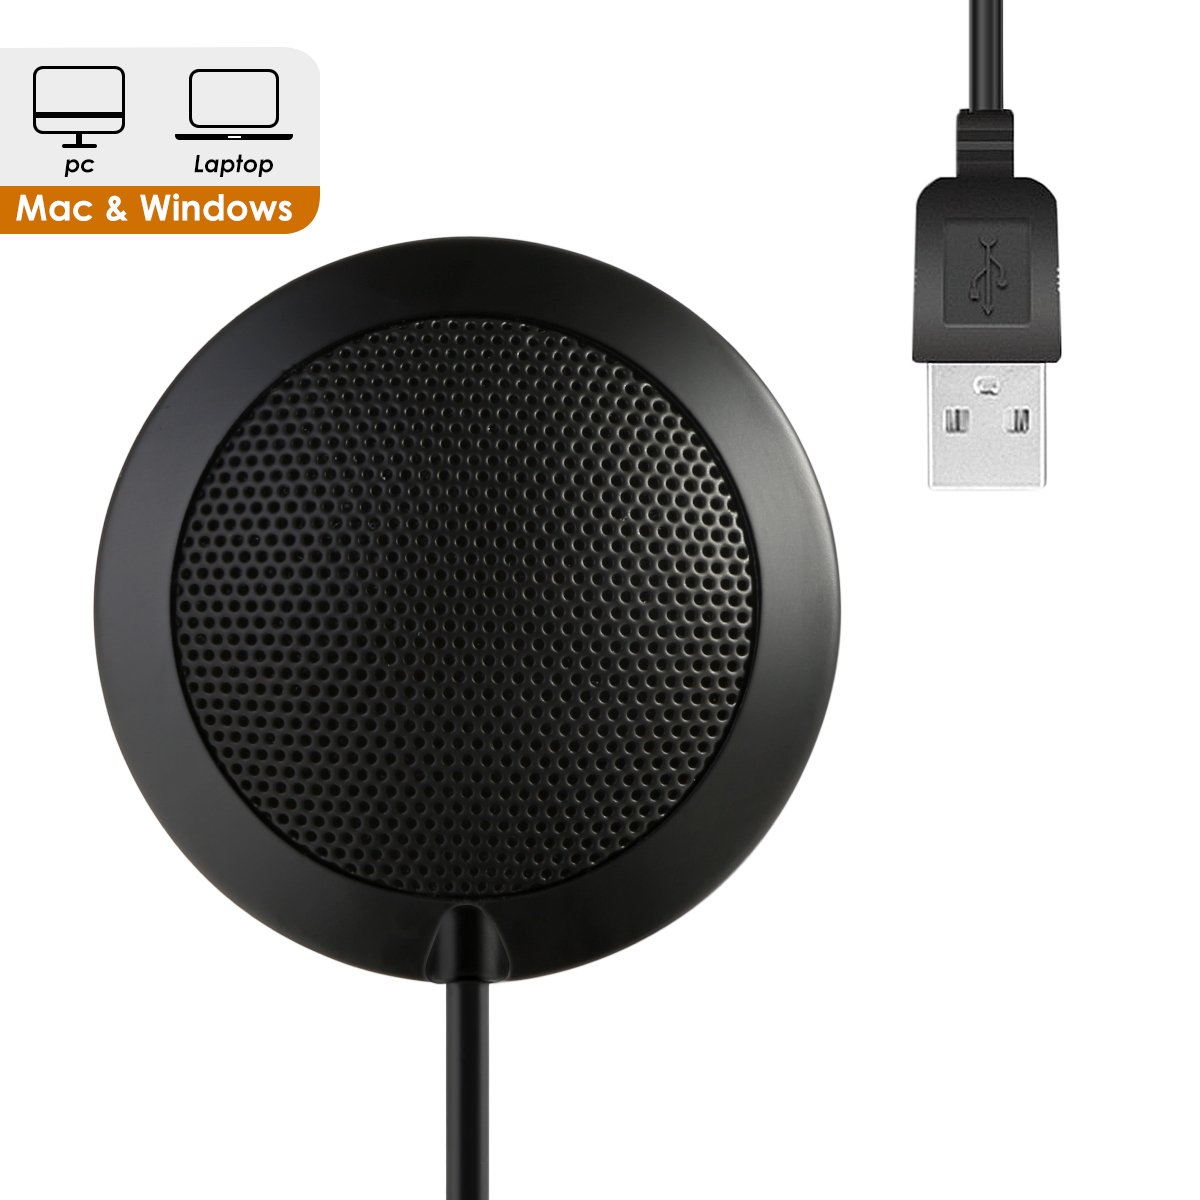 USB Microphone for Computer,SOONHUA PC Laptop Condenser Omnidirectional Mic Desktop Conference Microphone for Recording, Video Meeting, Gaming, Skype Chatting, VoIP Calls with 360°10' Pickup Range by SOONHUA